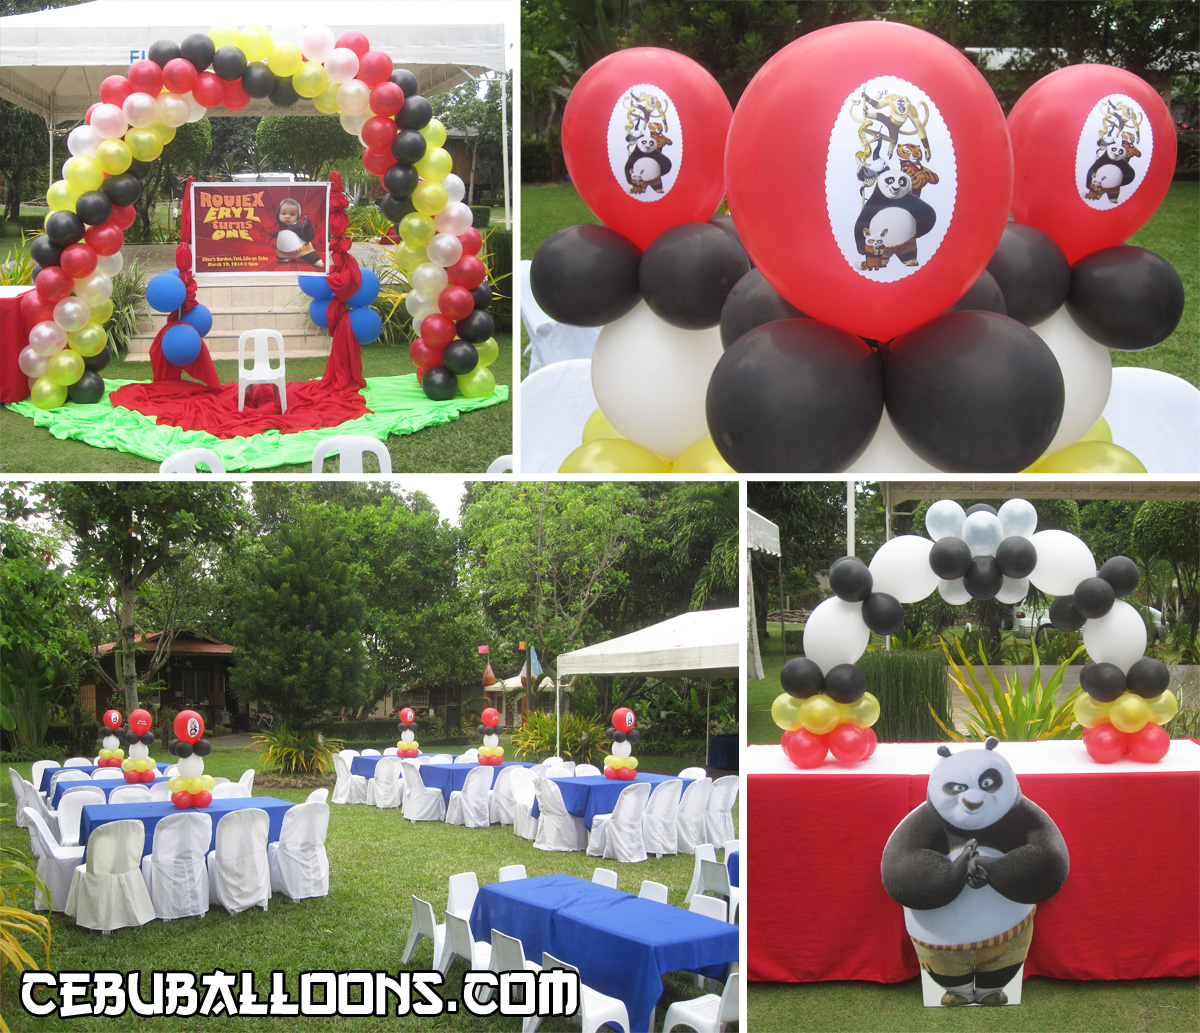 Decorating an outdoor party venue with balloons | Cebu Balloons and ...